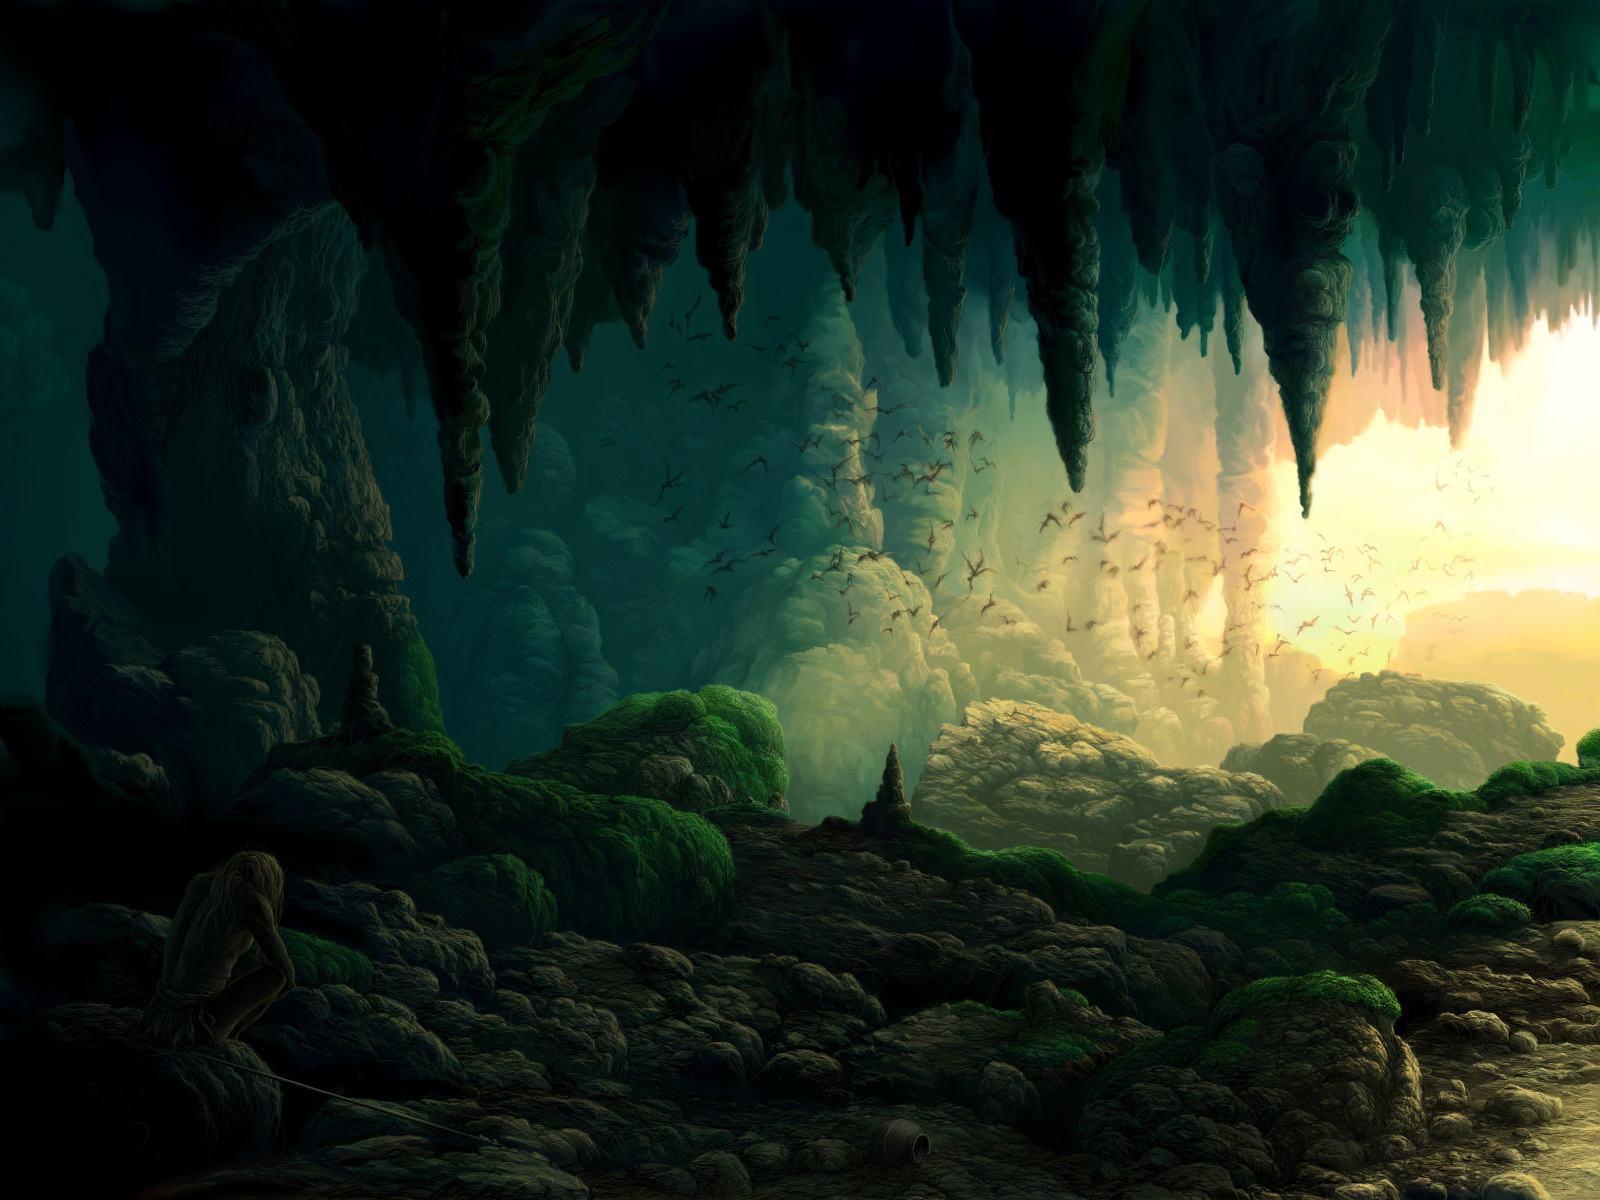 Boys were taken into the caves to be initiated as hunters.